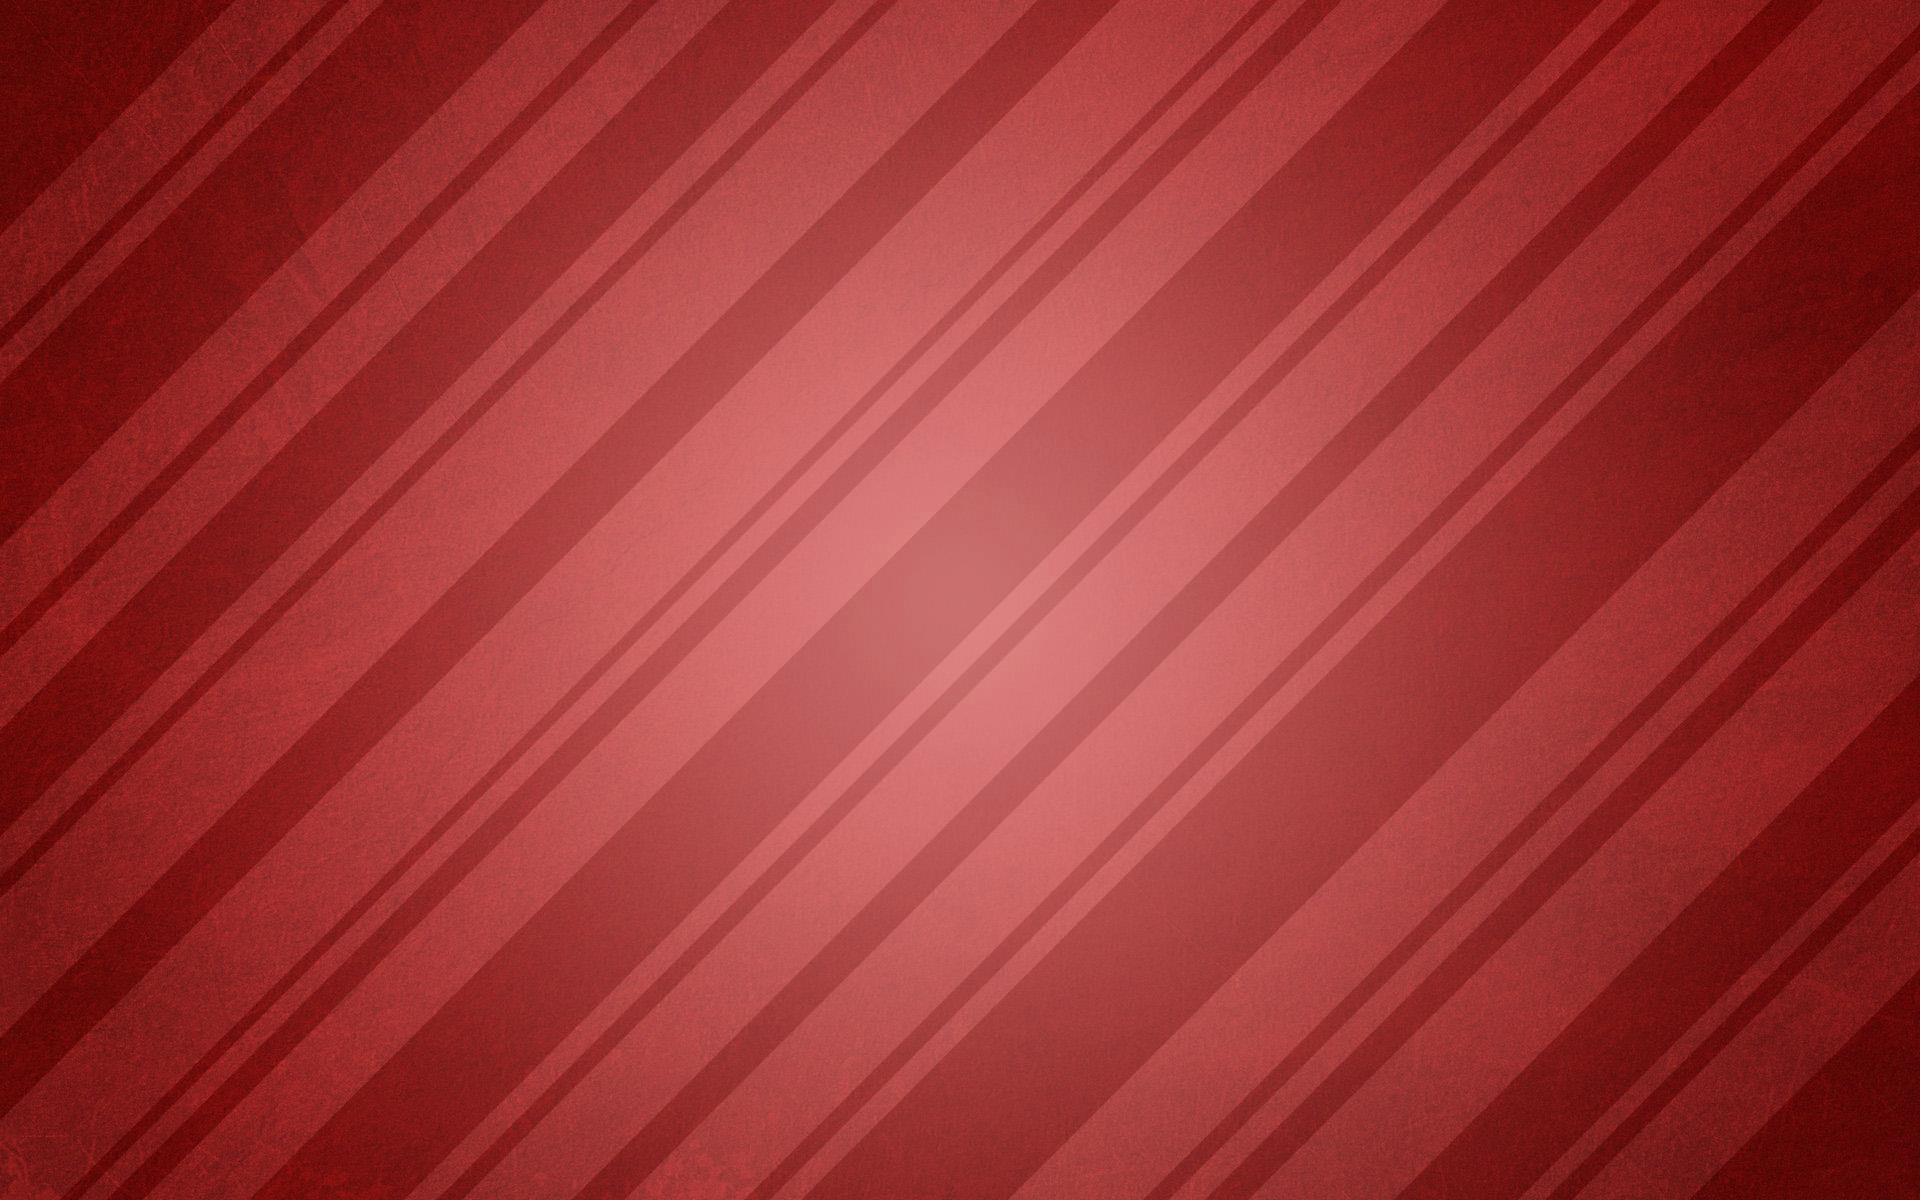 Wrapping Paper Red